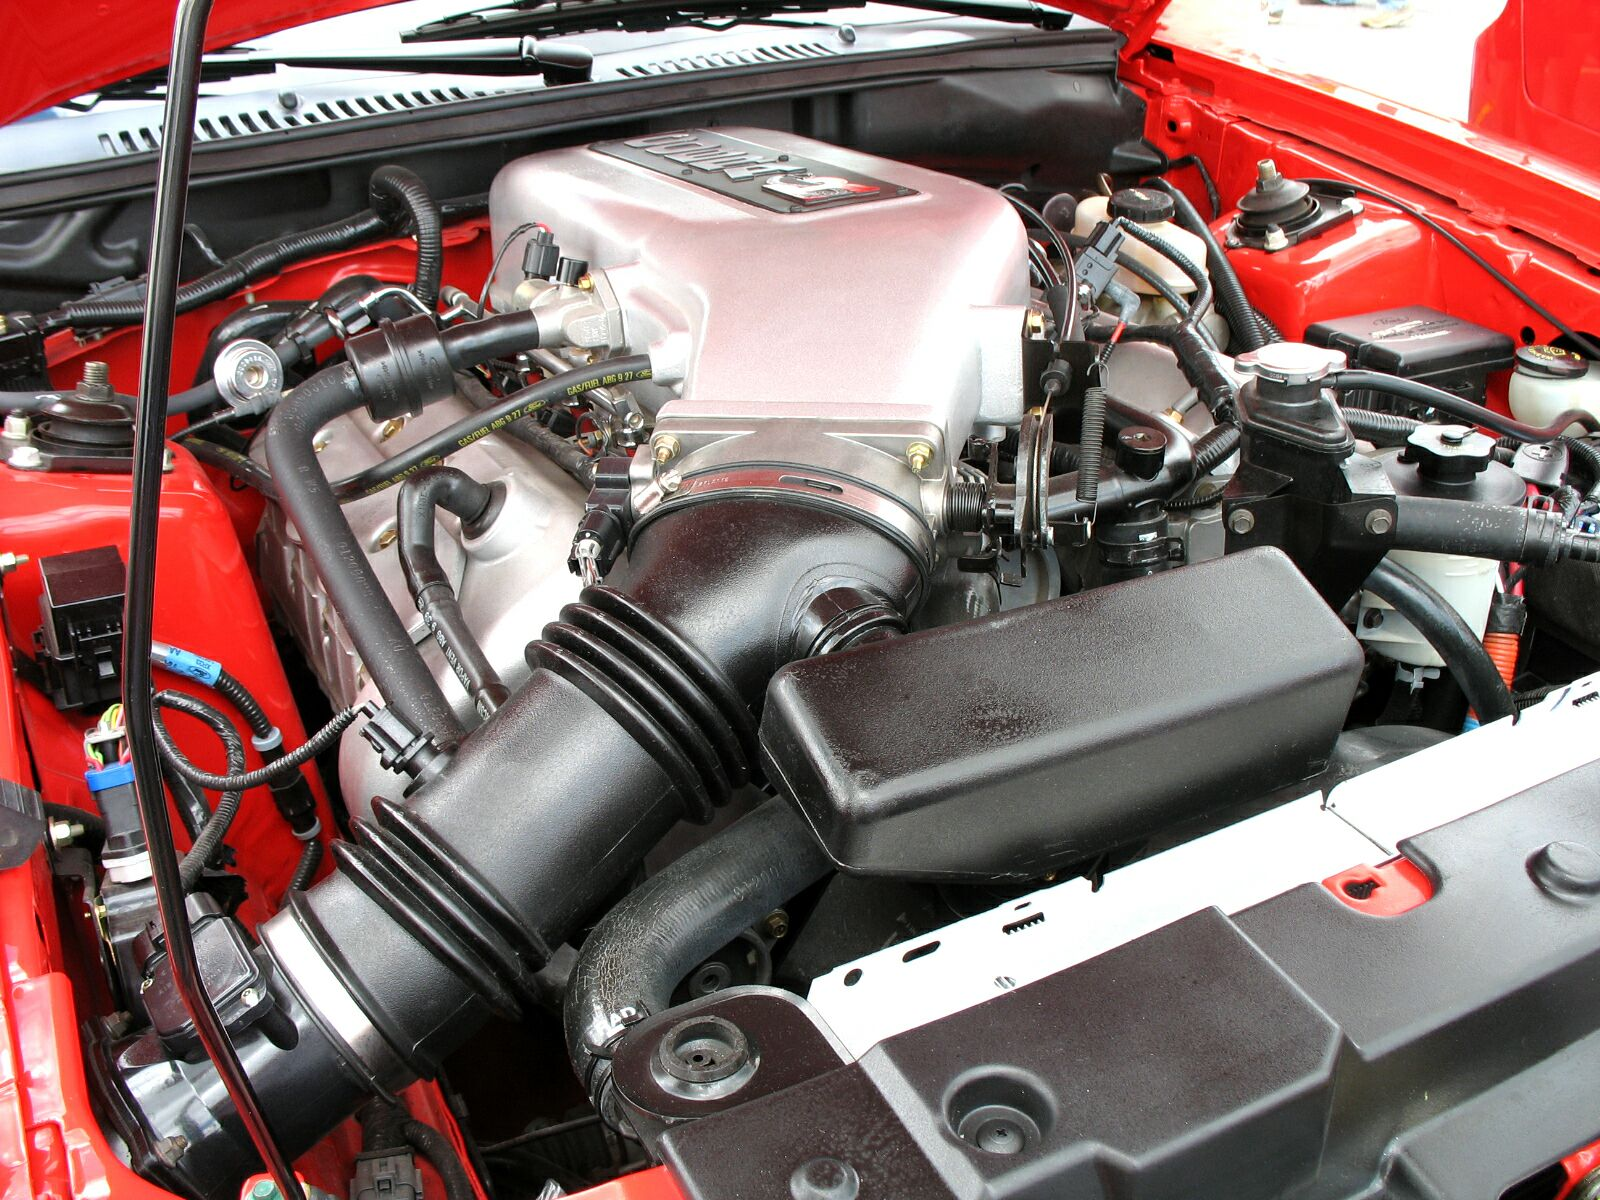 Ford Modular Engine 2012 Mustang Diagram 4 Valve